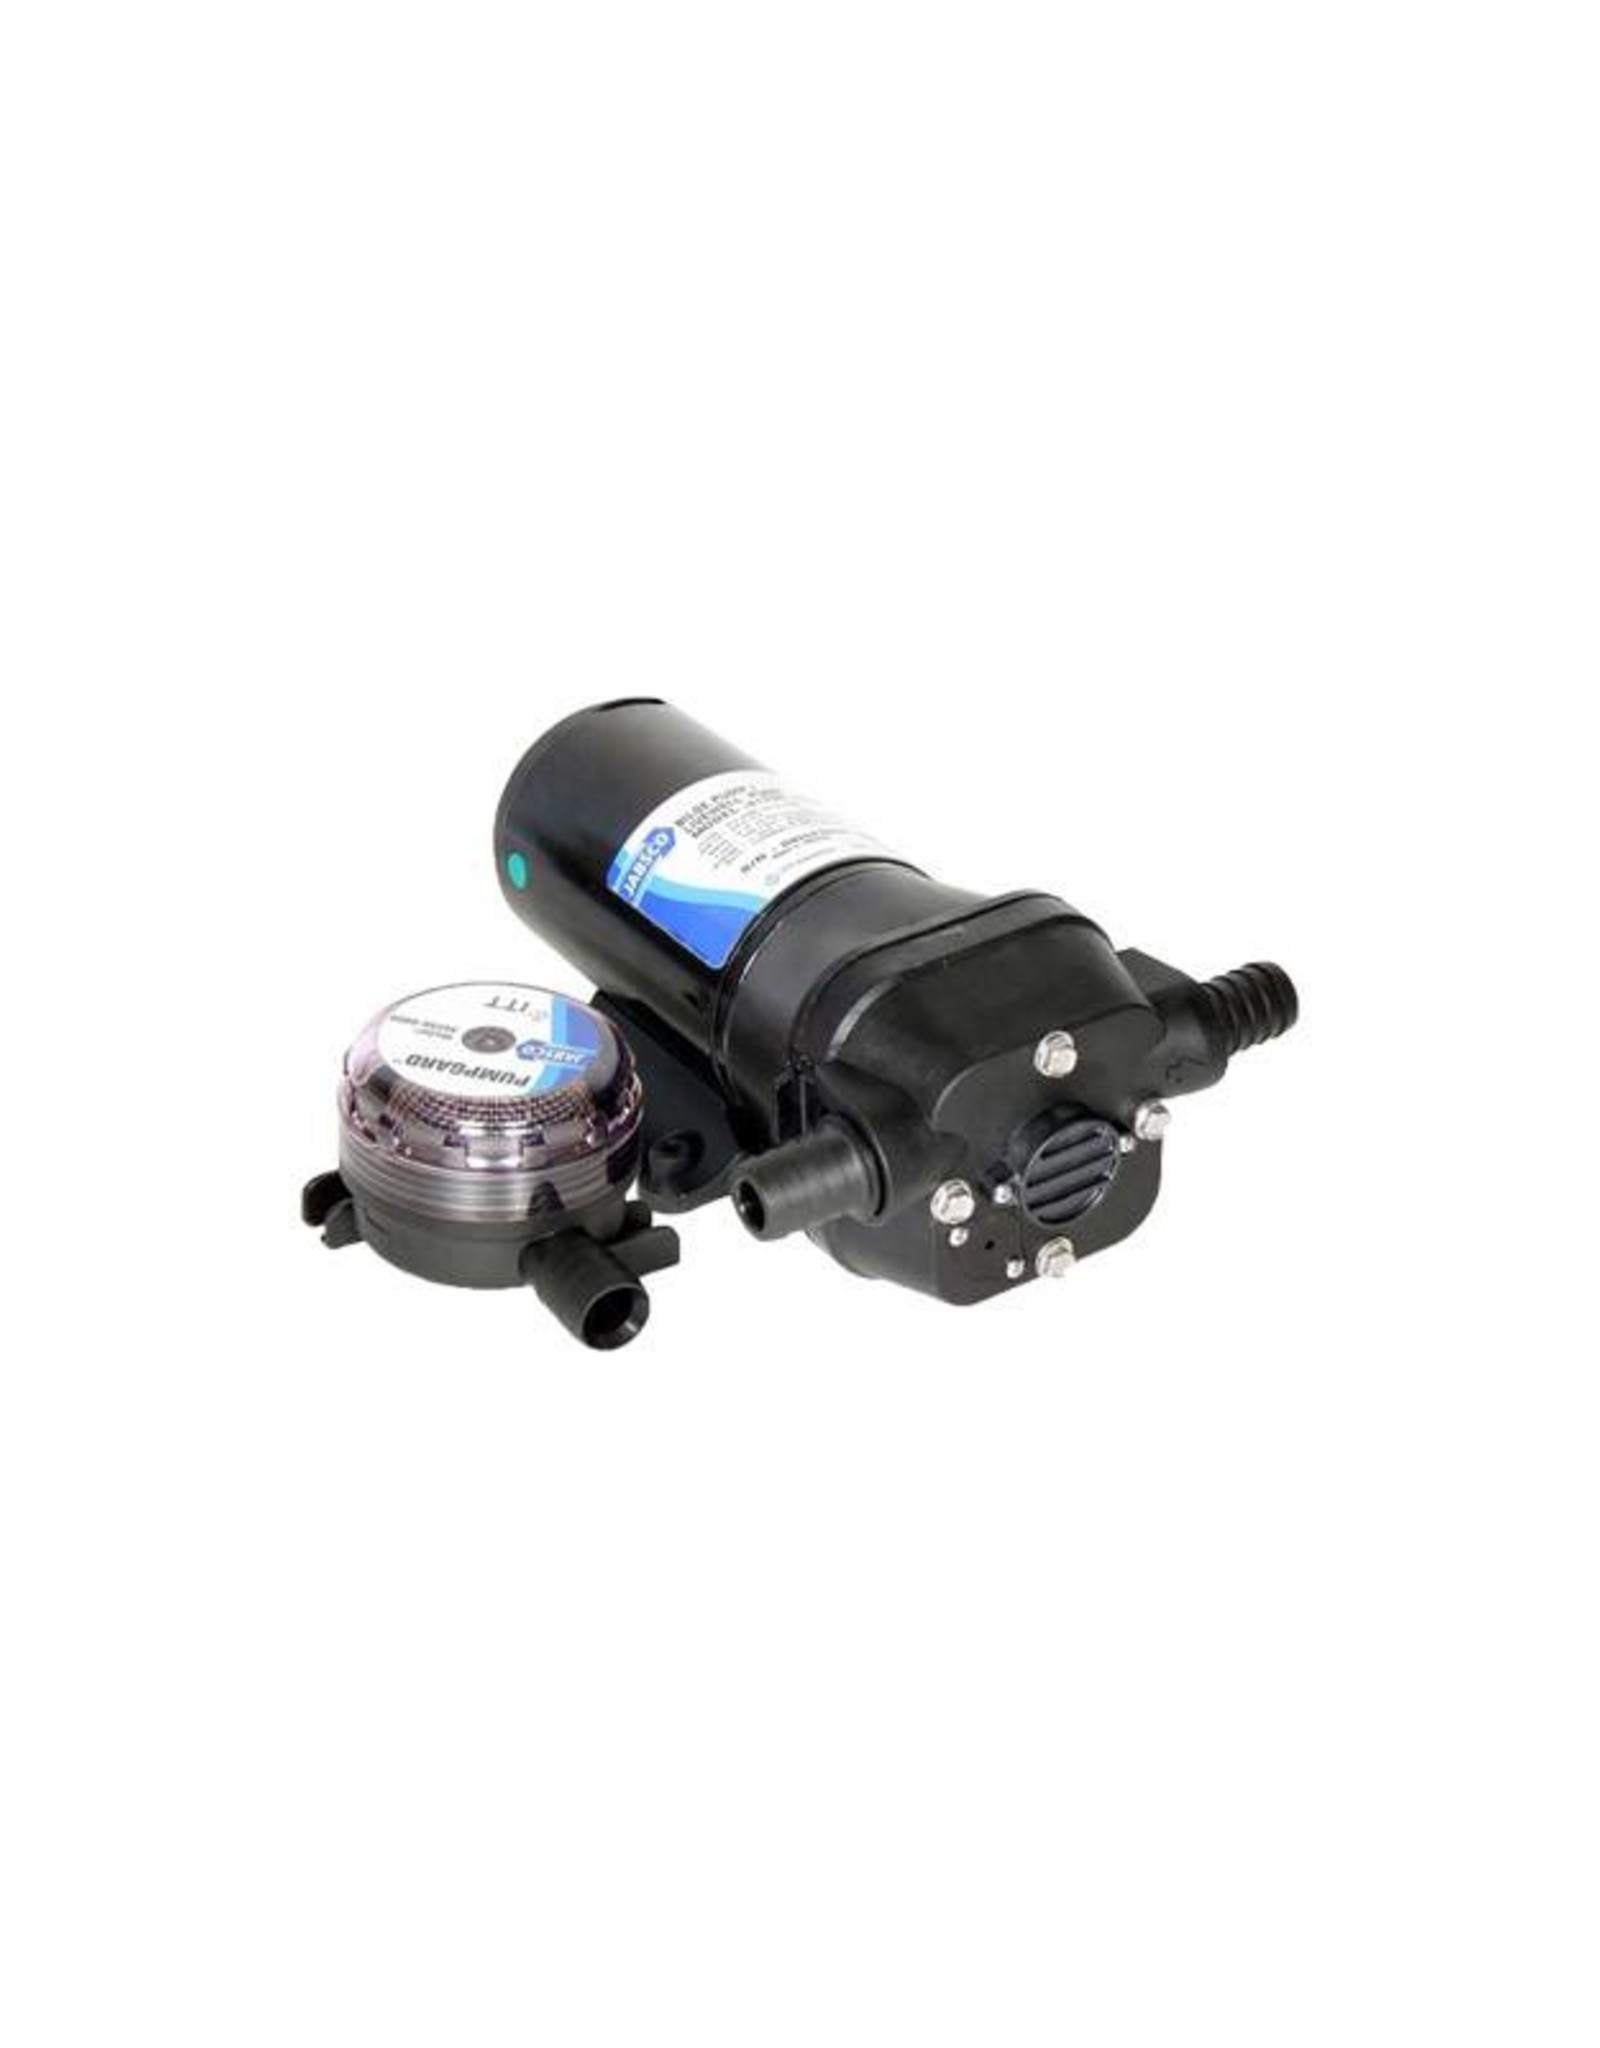 PARMAX 4 WATER SYSTEM PUMP 12V 4.3GPM 31705-0092